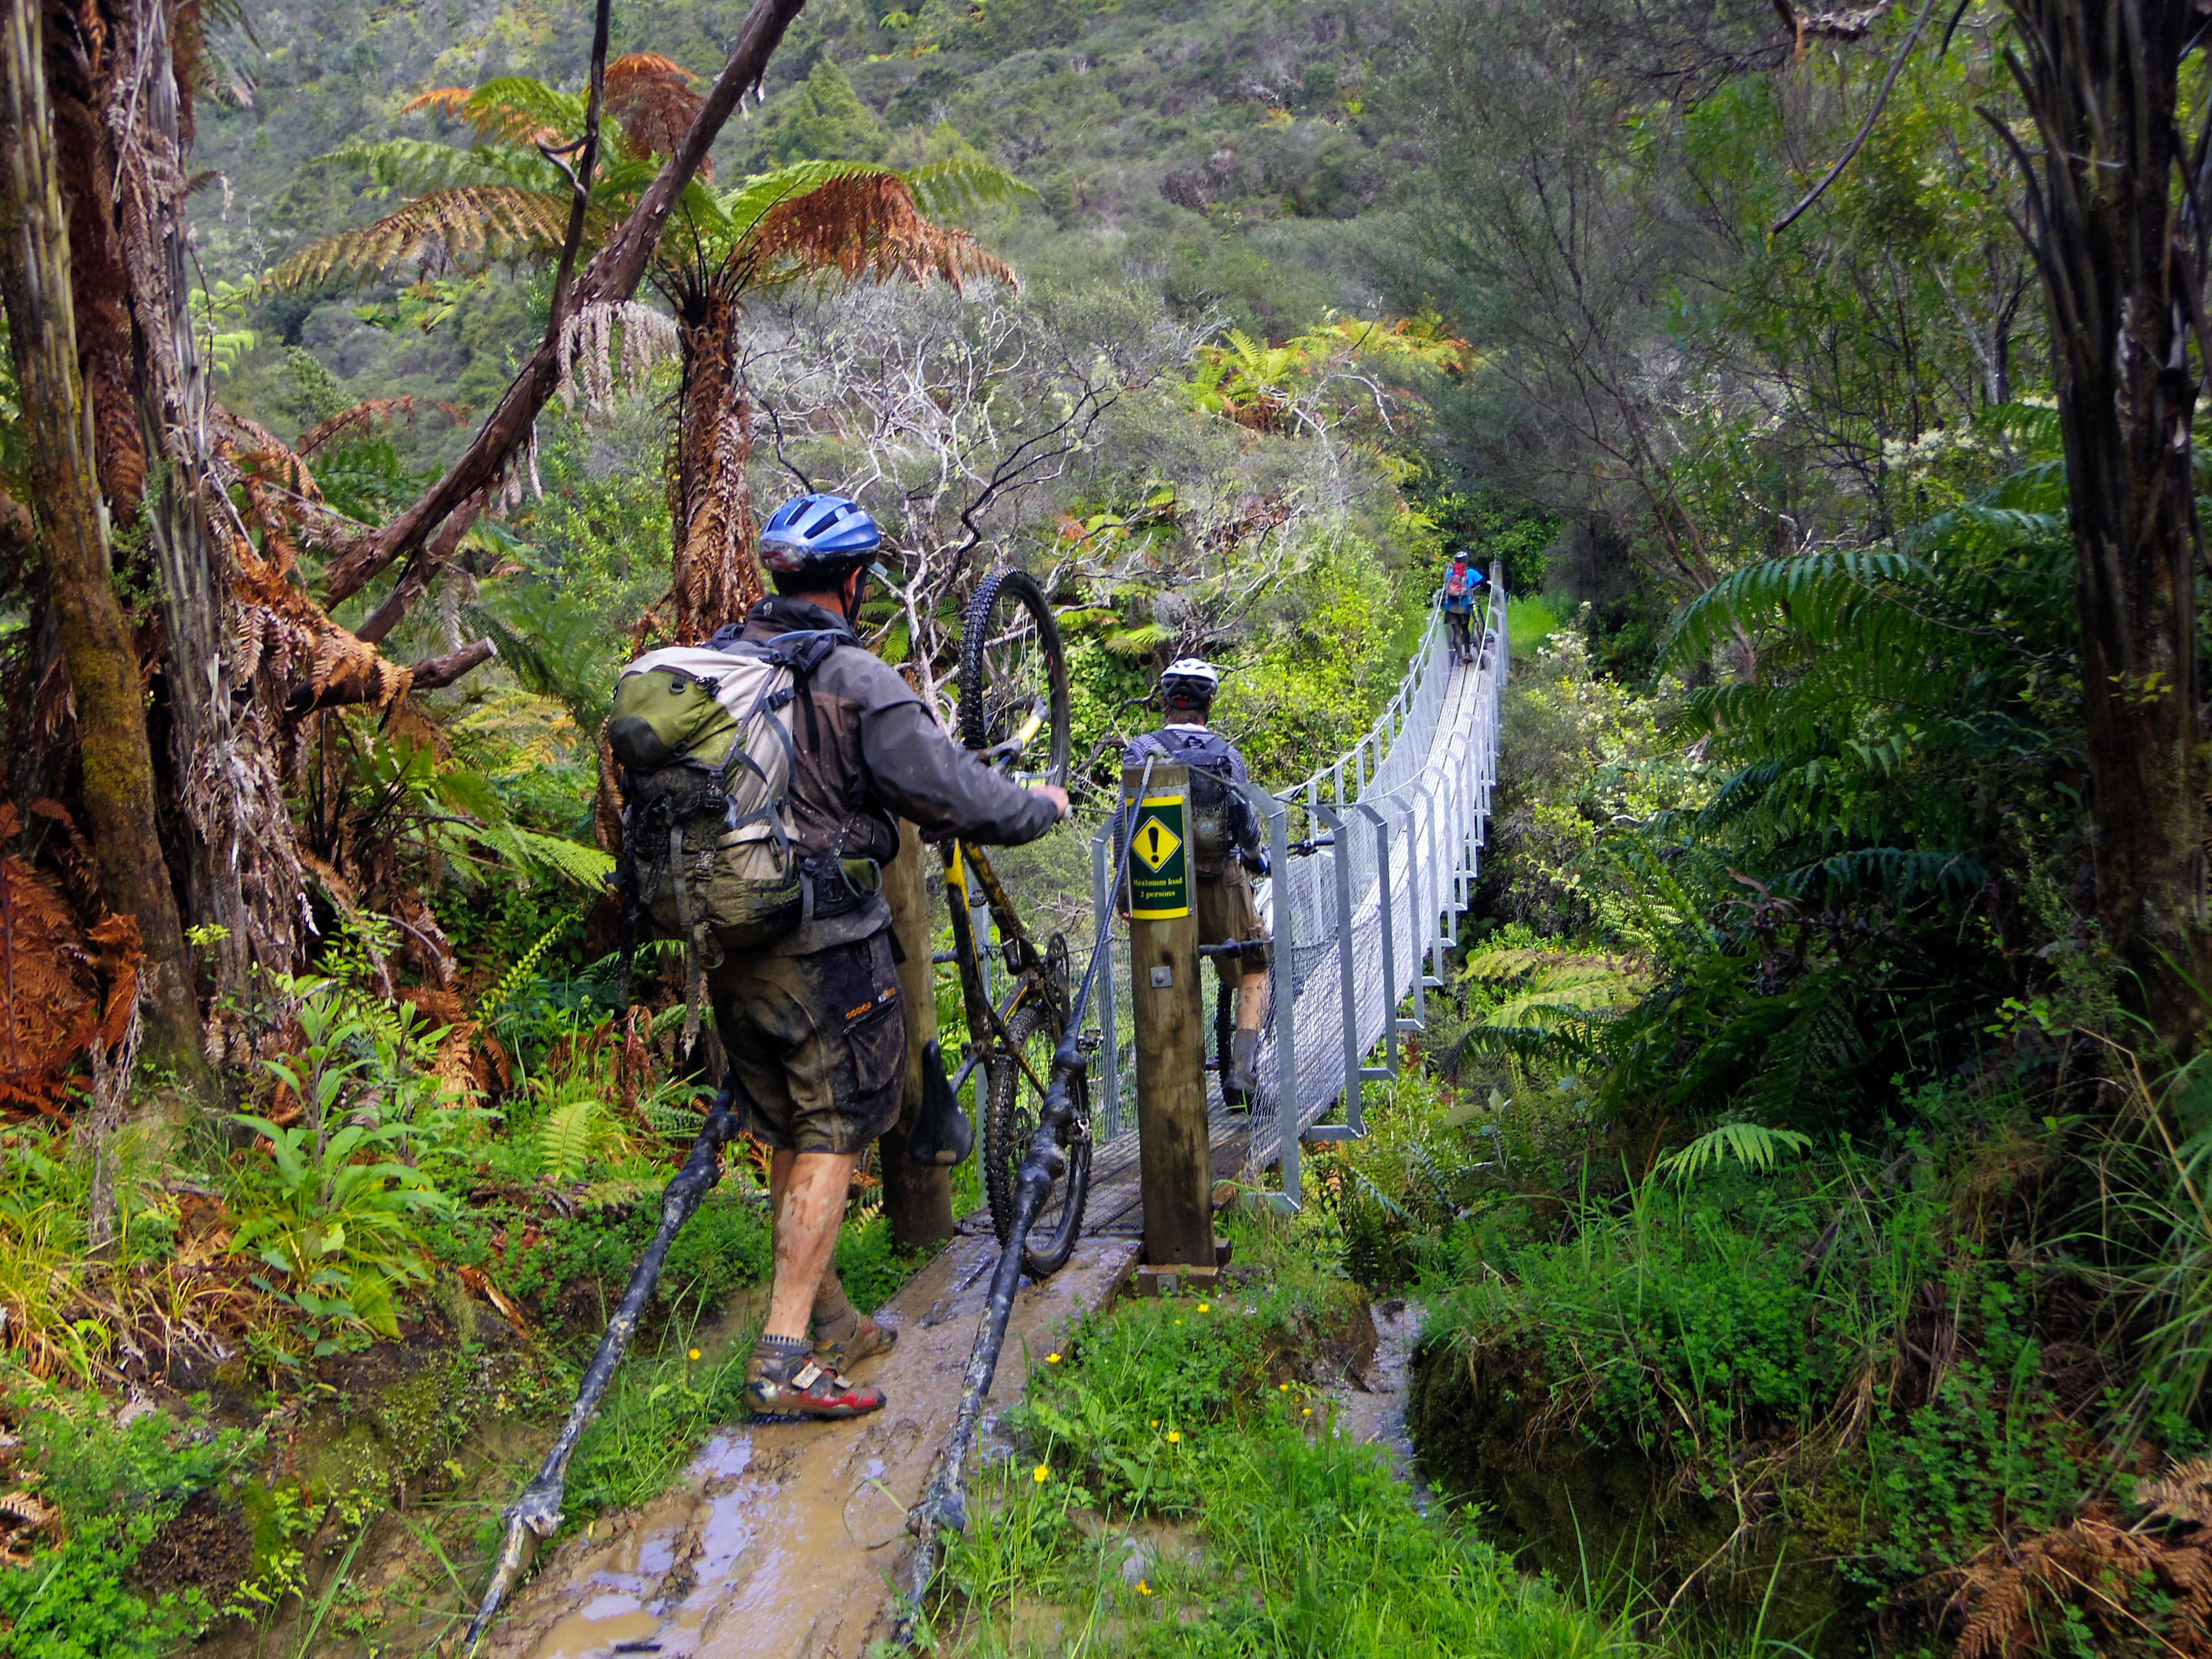 Bikers cross one of the many bridges on the Mangapurua Track in Whanganui National Park on the North Island. The trail is part of the New Zealand Cycle Trail network.